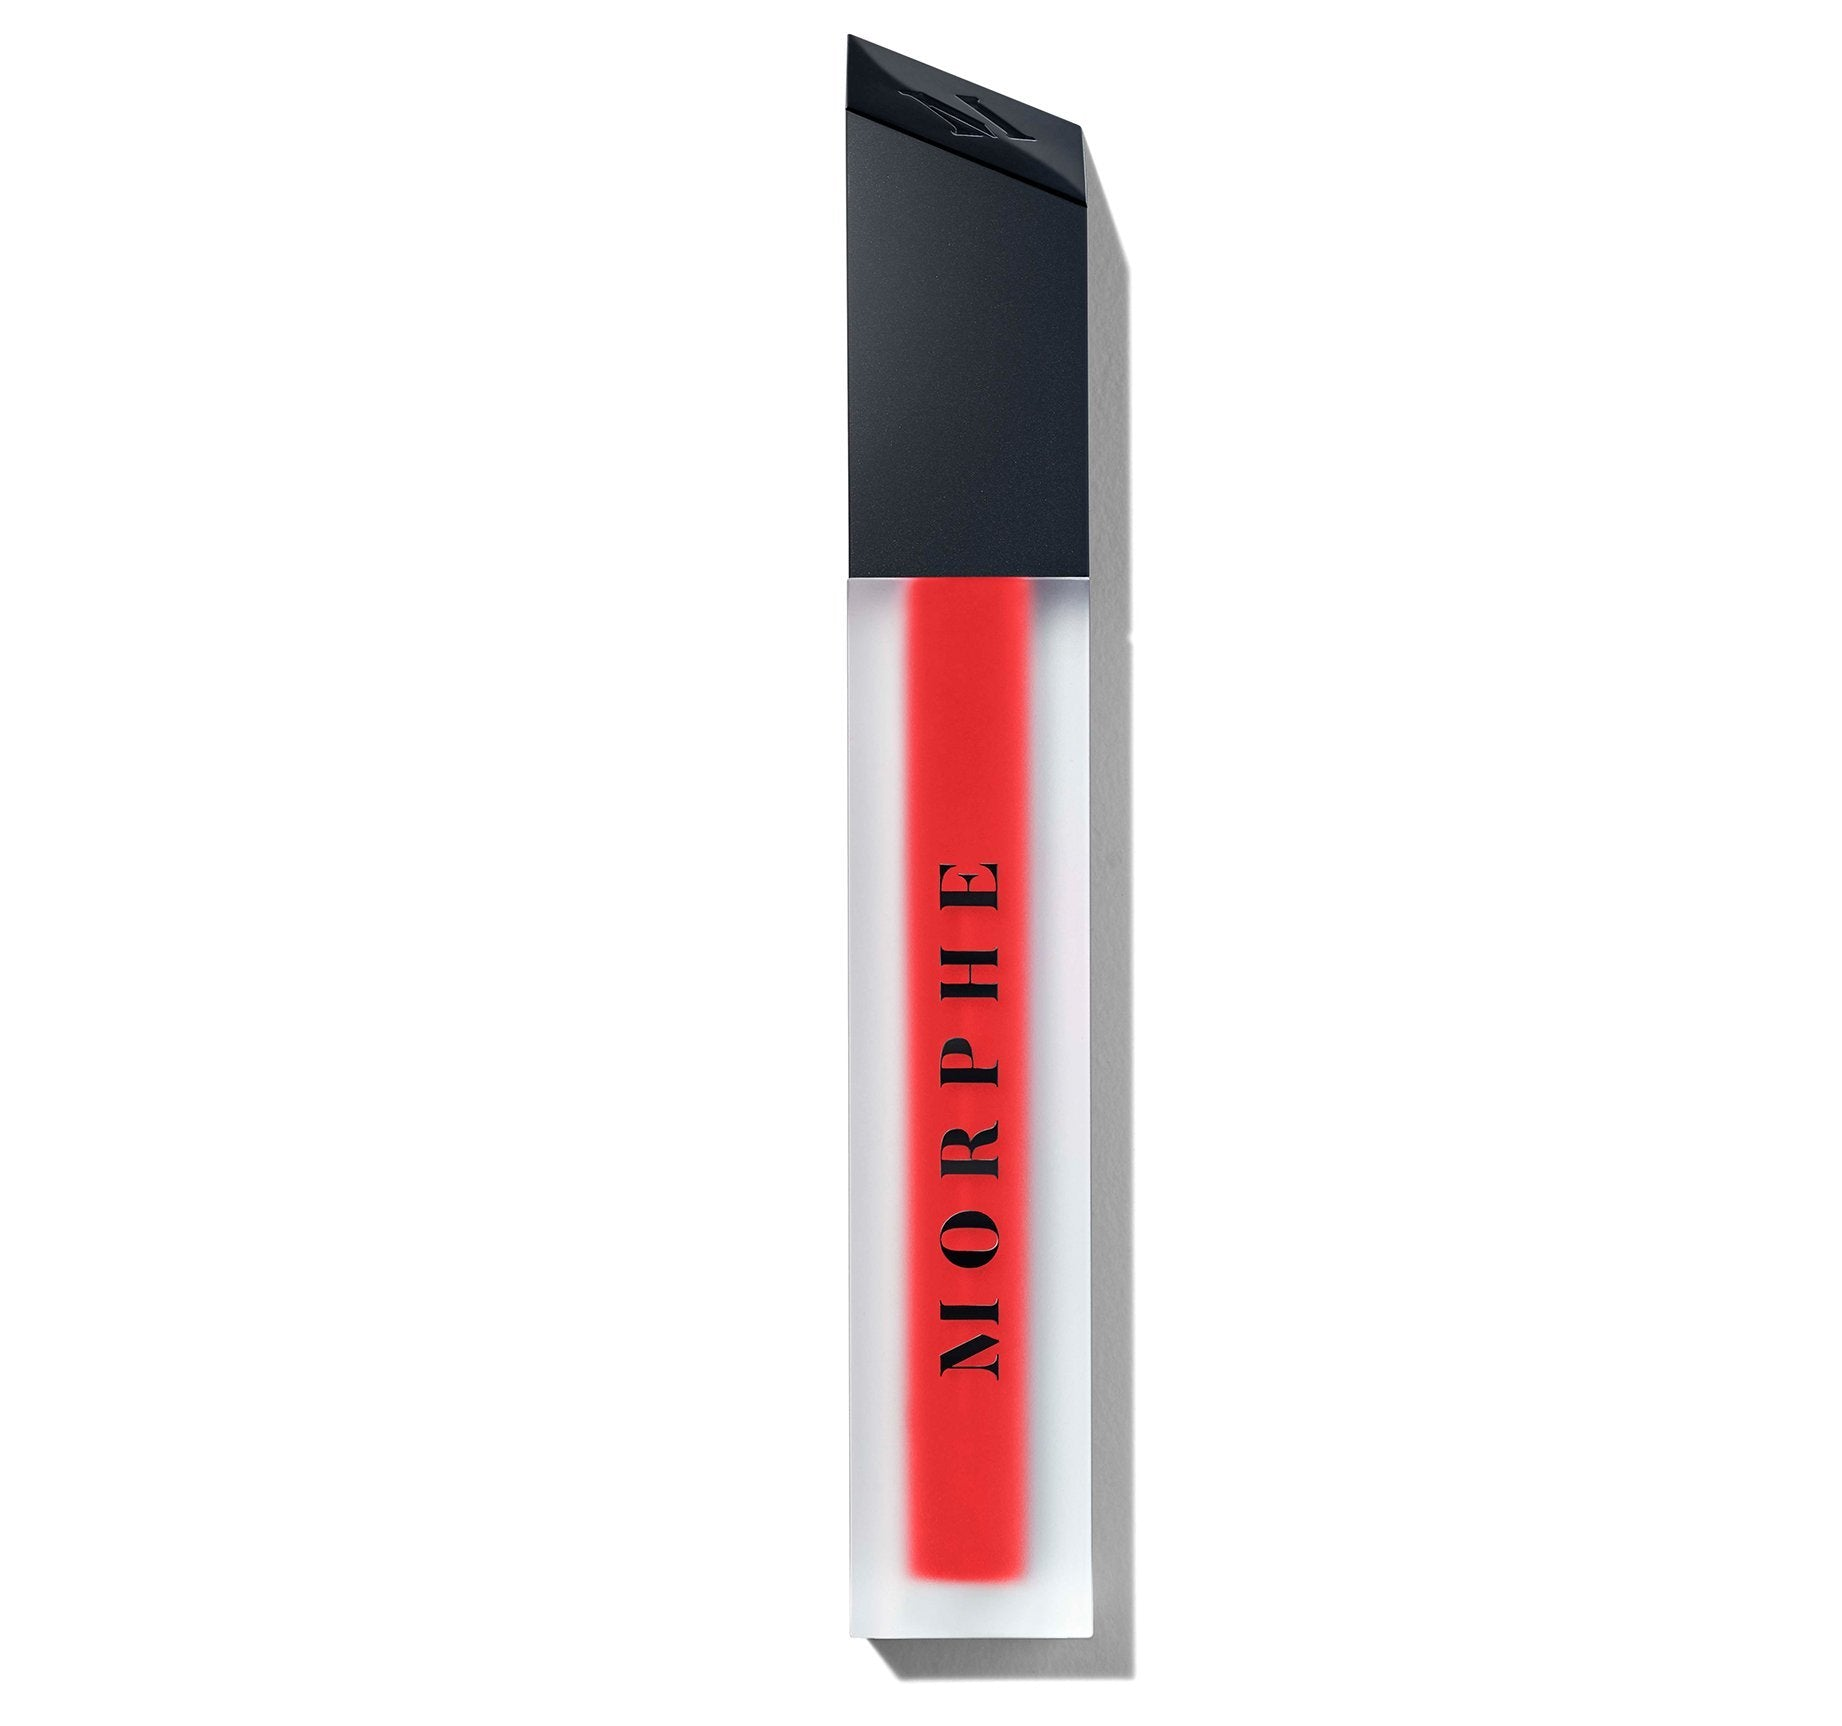 MATTE LIQUID LIPSTICK - MORPHE, view larger image